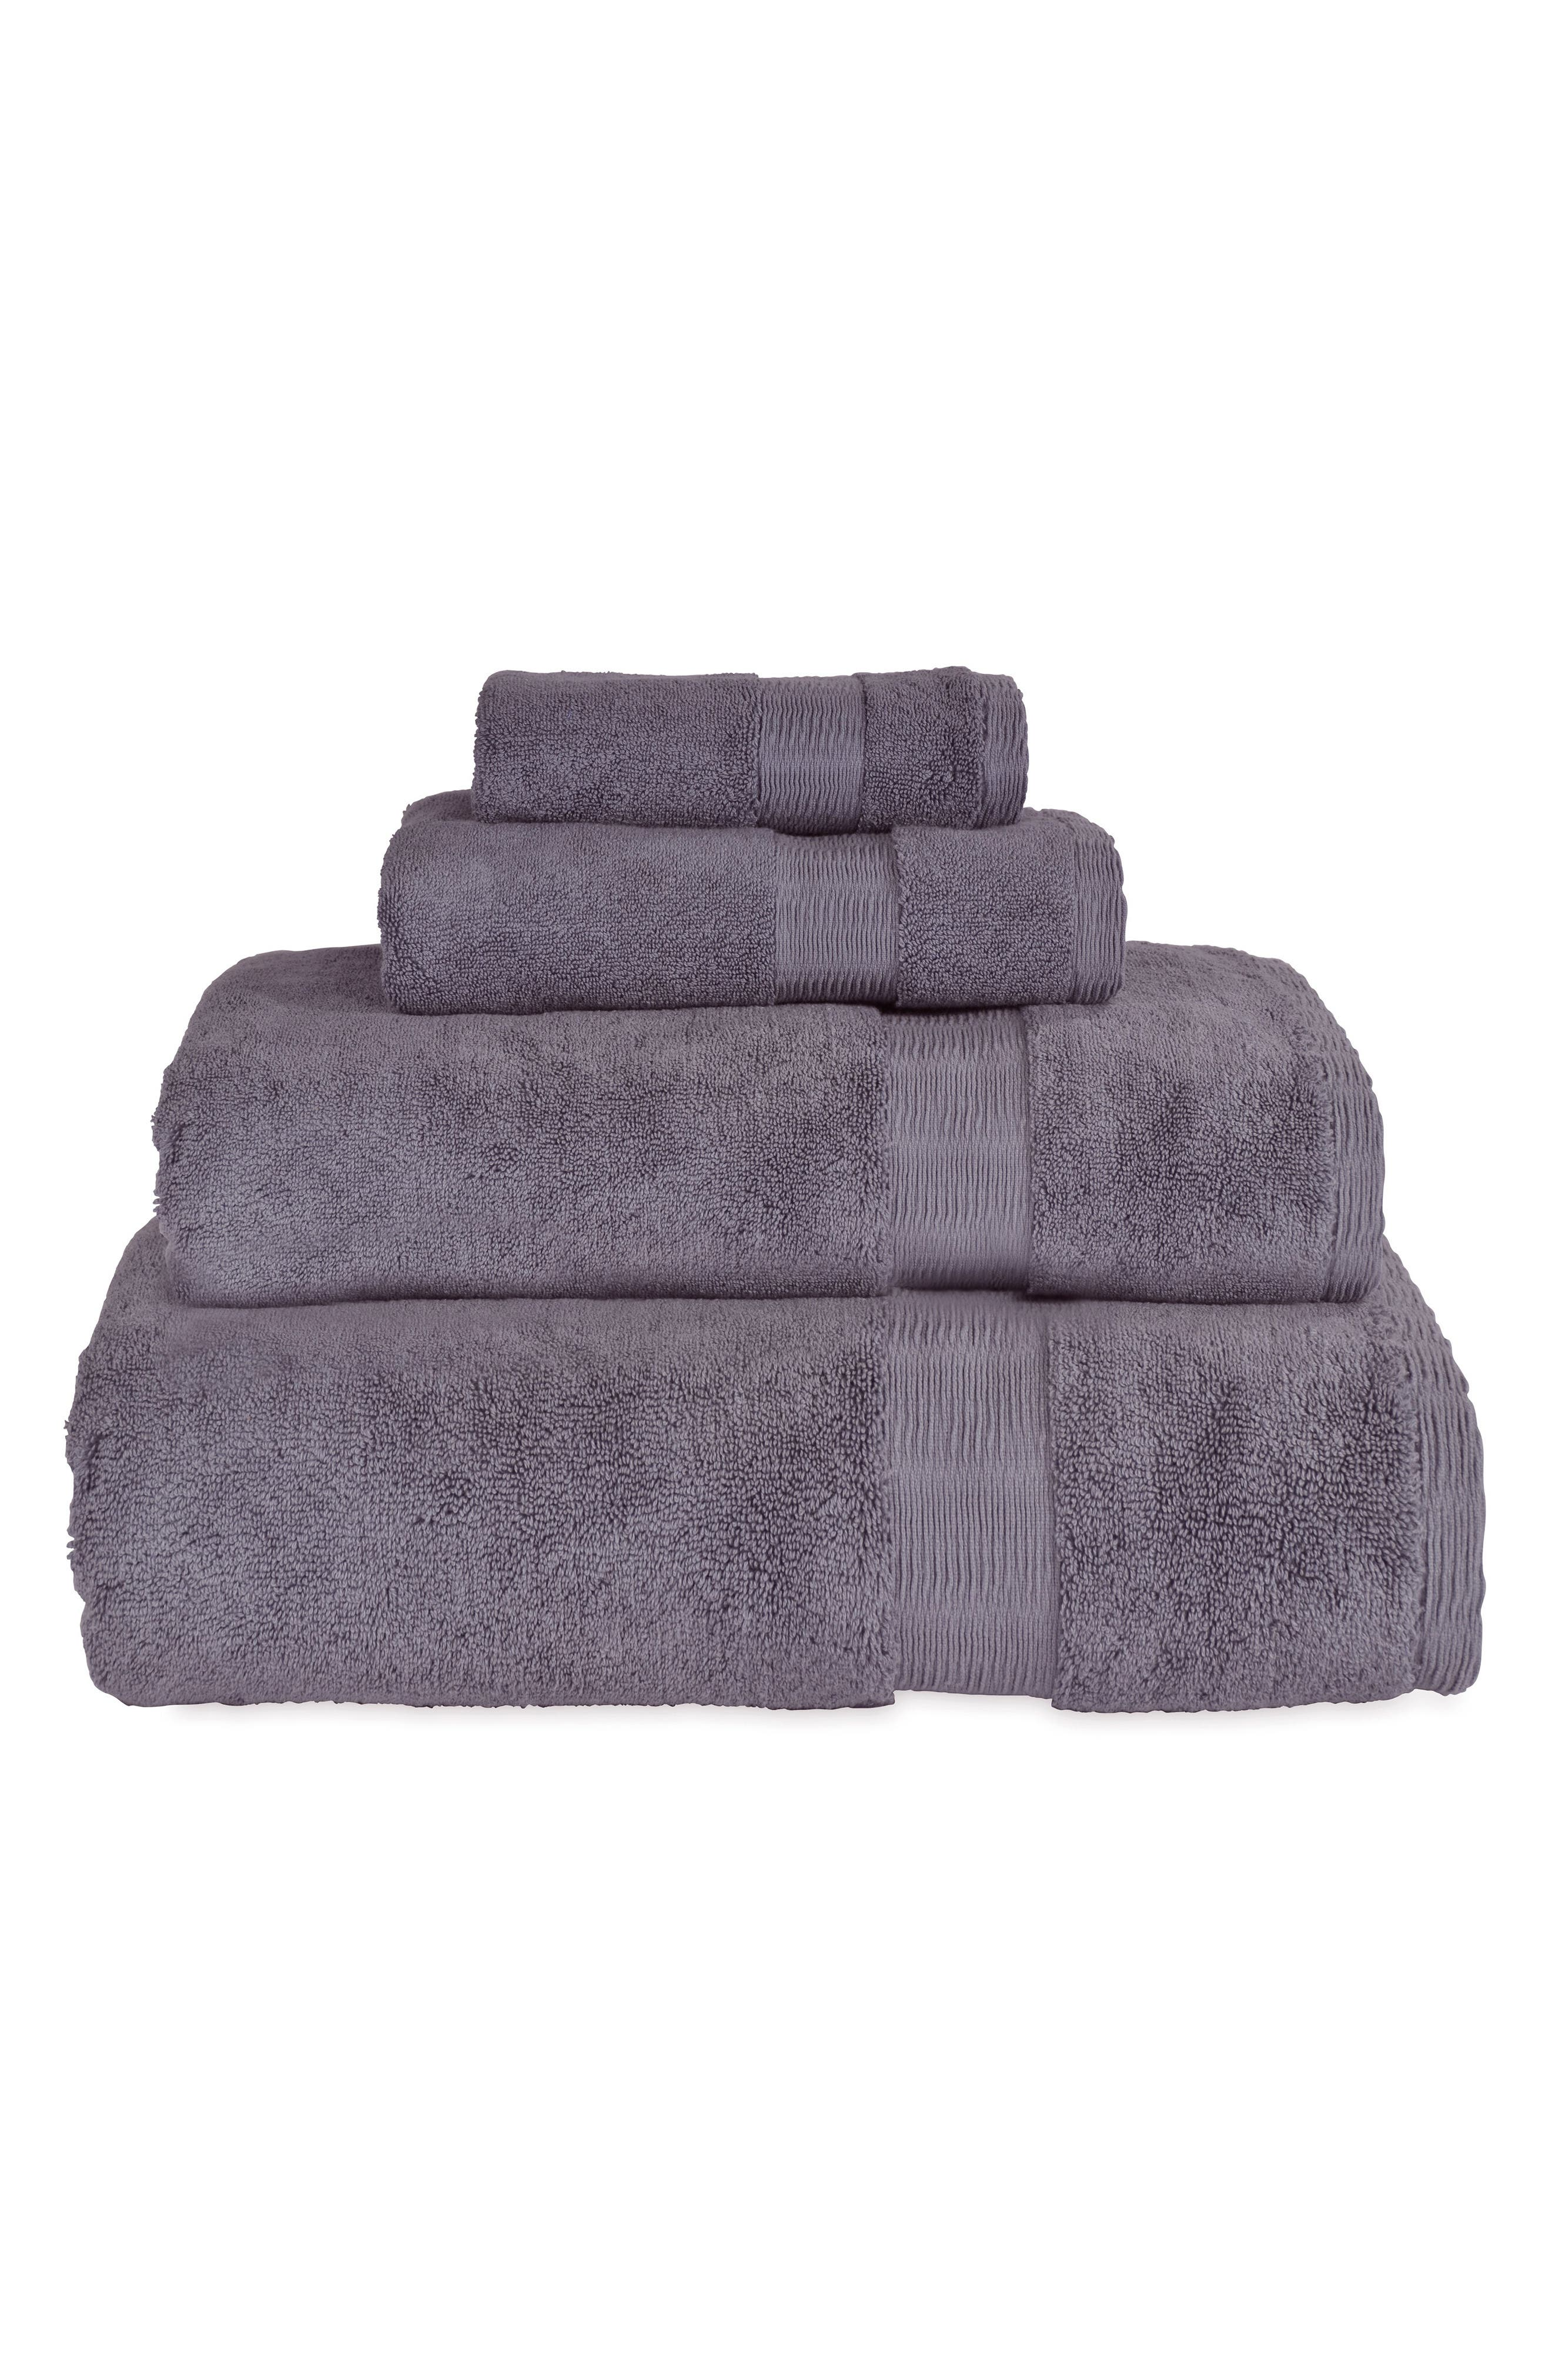 Mercer Bath Sheet,                             Alternate thumbnail 2, color,                             Dusty Lavender